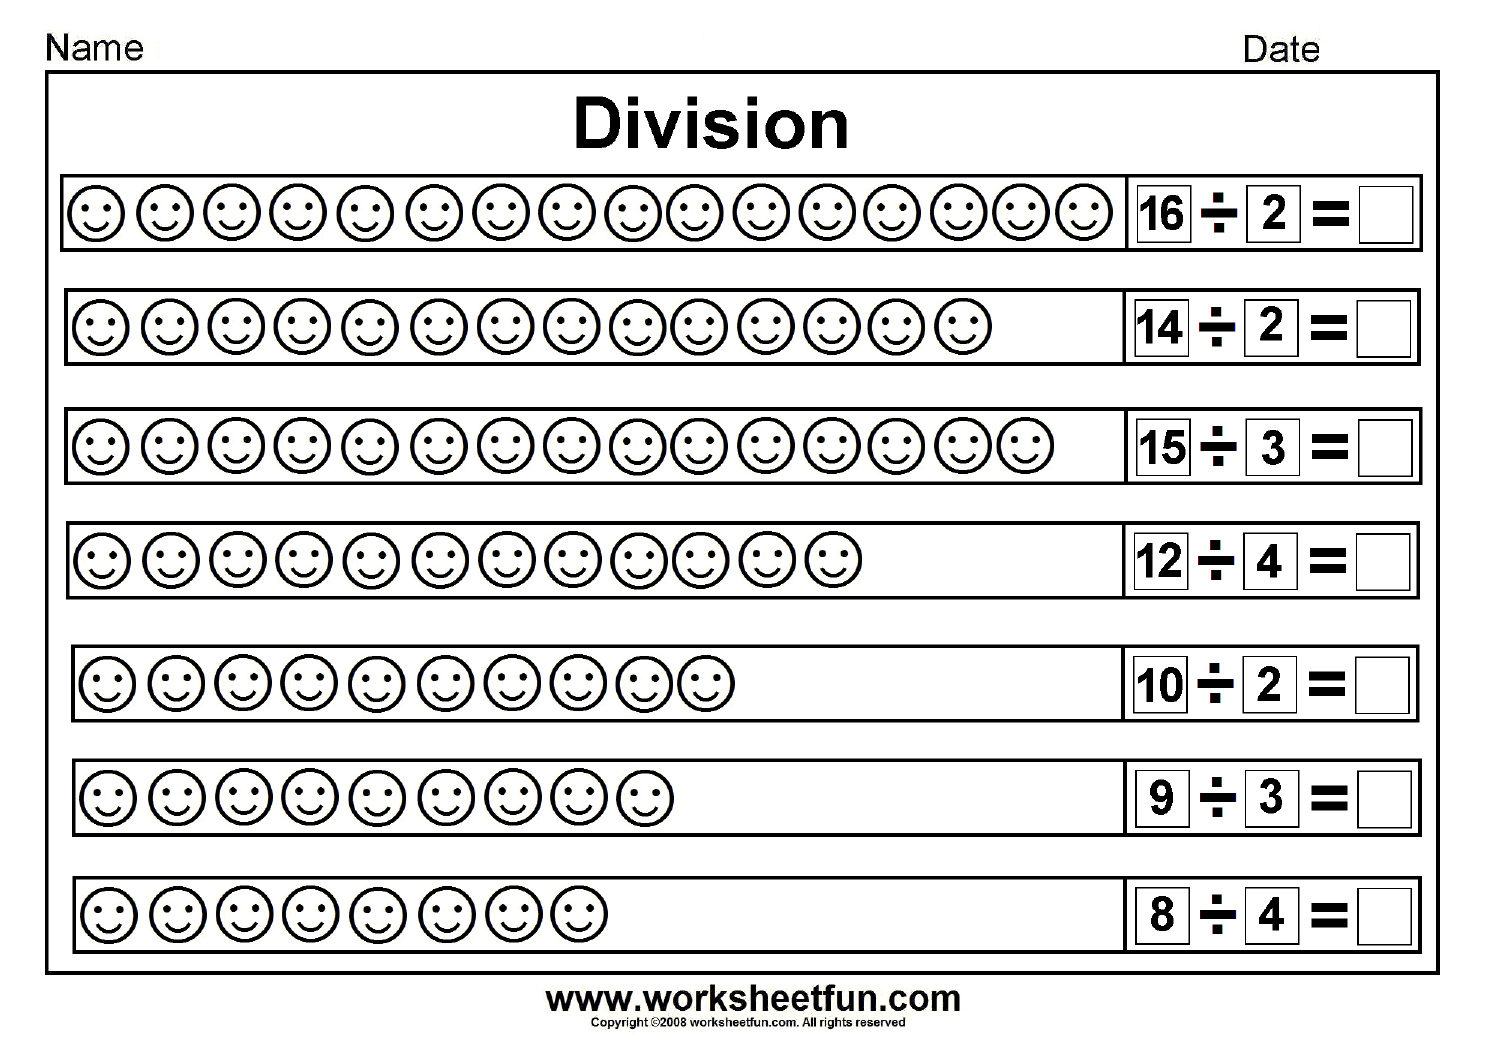 Worksheet Division Grade 3